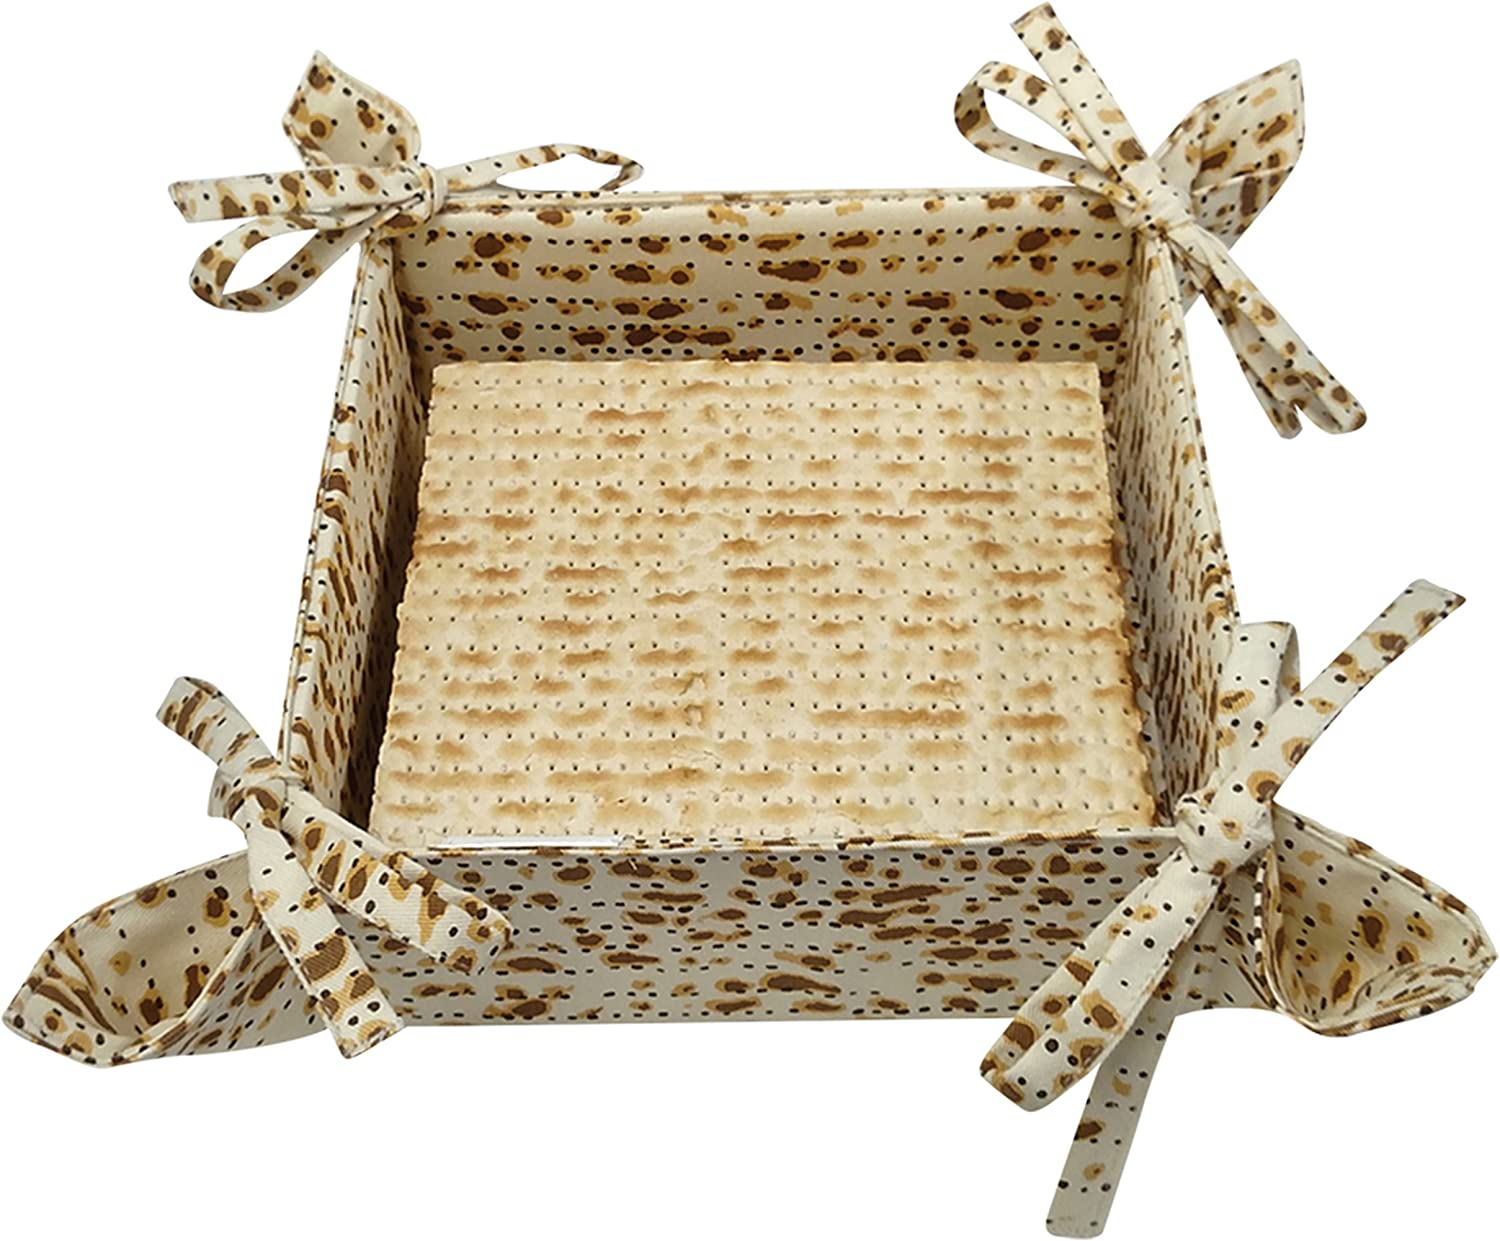 The Kosher Cook Decorative Passover Matzah Basket - Foldable, Bow Ties, Matza Print Design - 100% Cotton, 8 Square - Pesach Seder and Kitchen Accessories